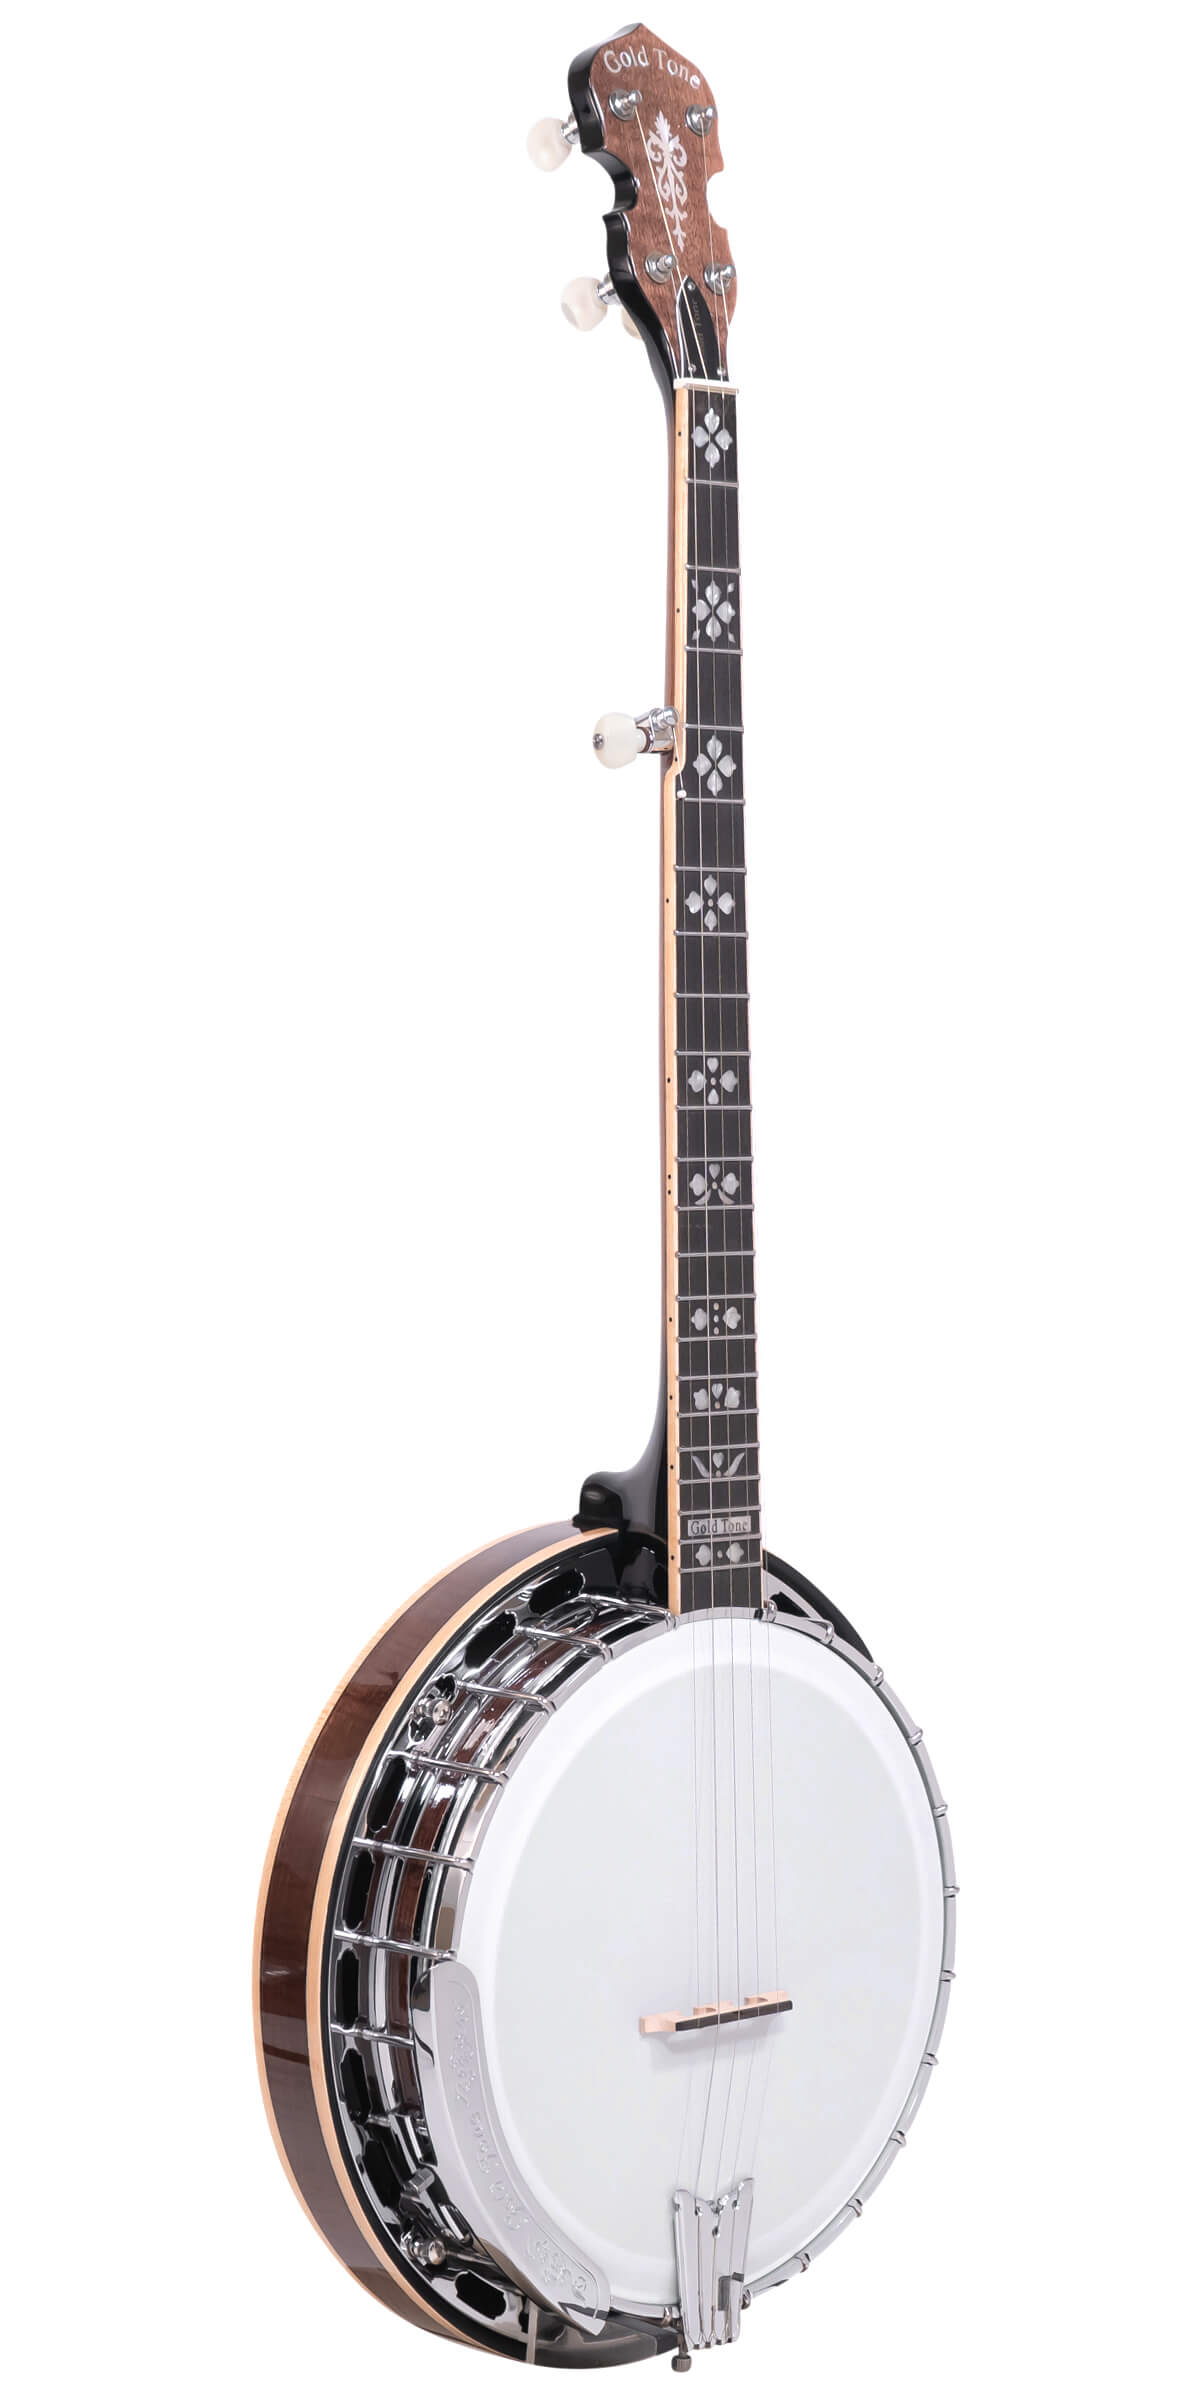 OB-250AT: Orange Blossom Banjo Arch Top